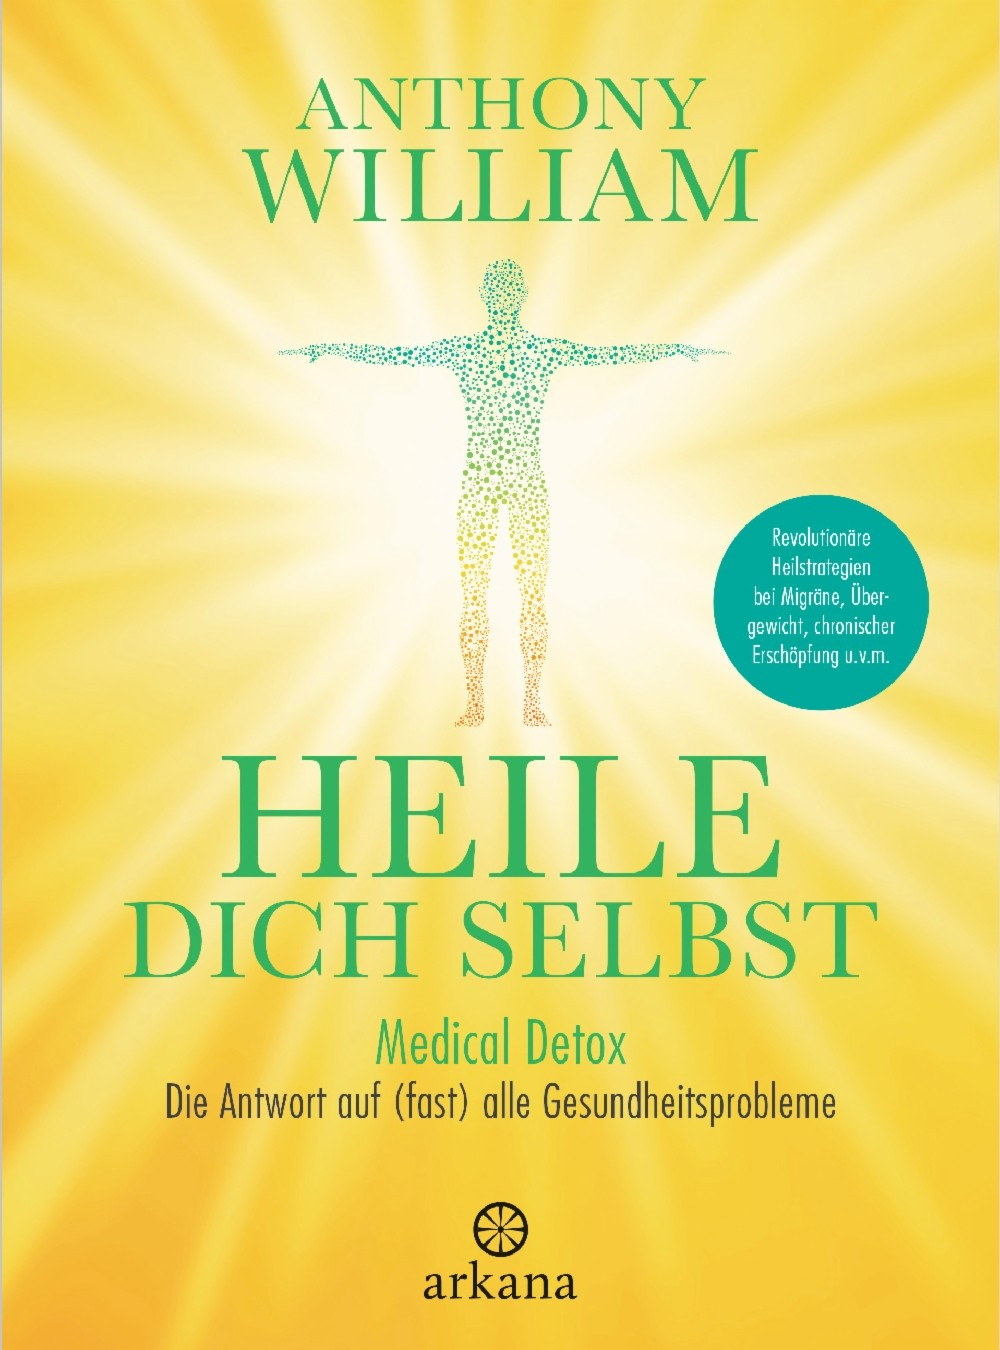 Heile dich selbst Anthony William Hardcover NEU